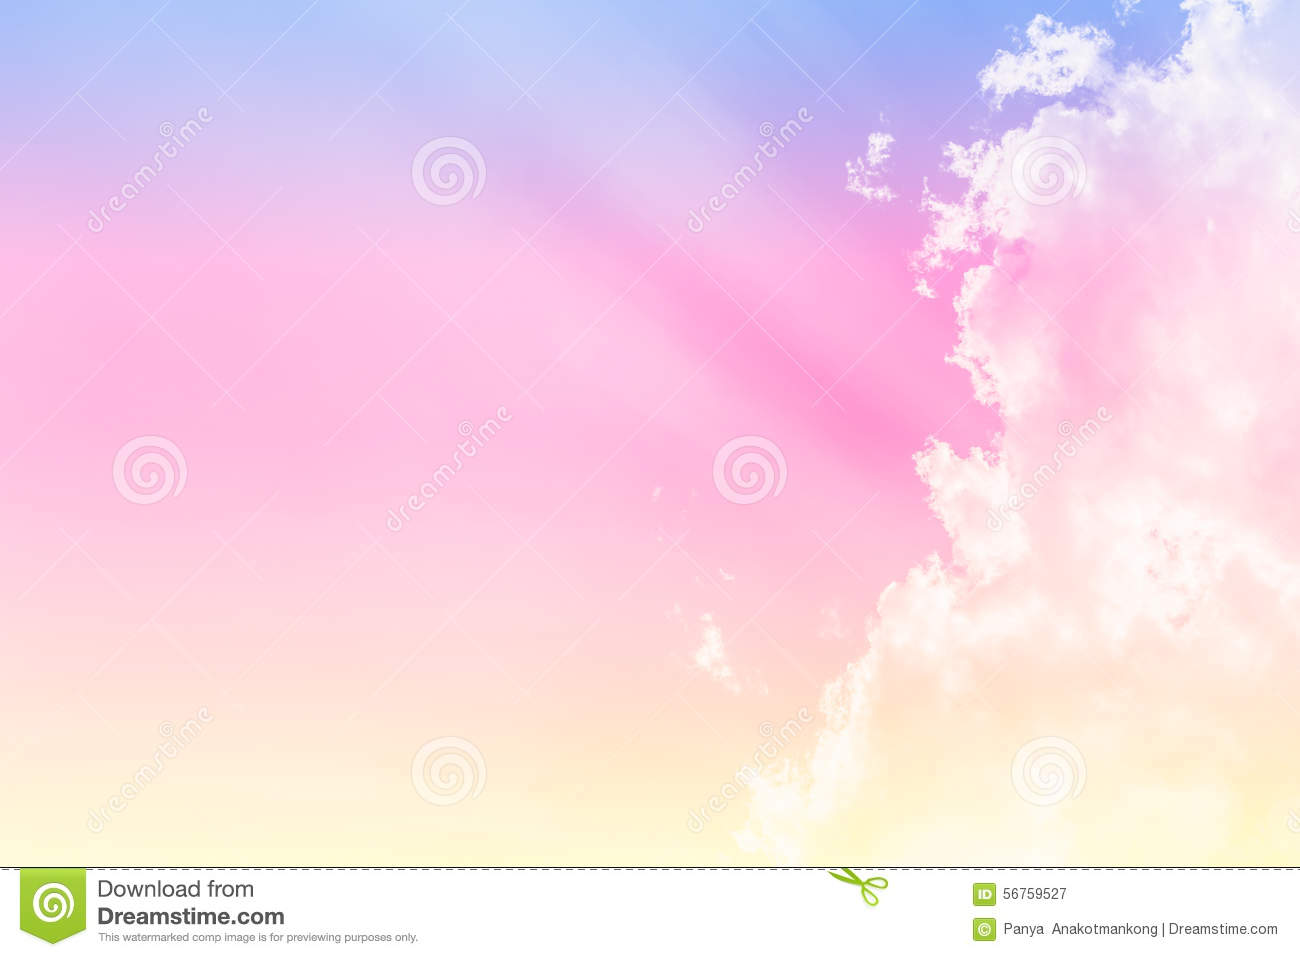 Background image and color - Soft Cloud Background Color